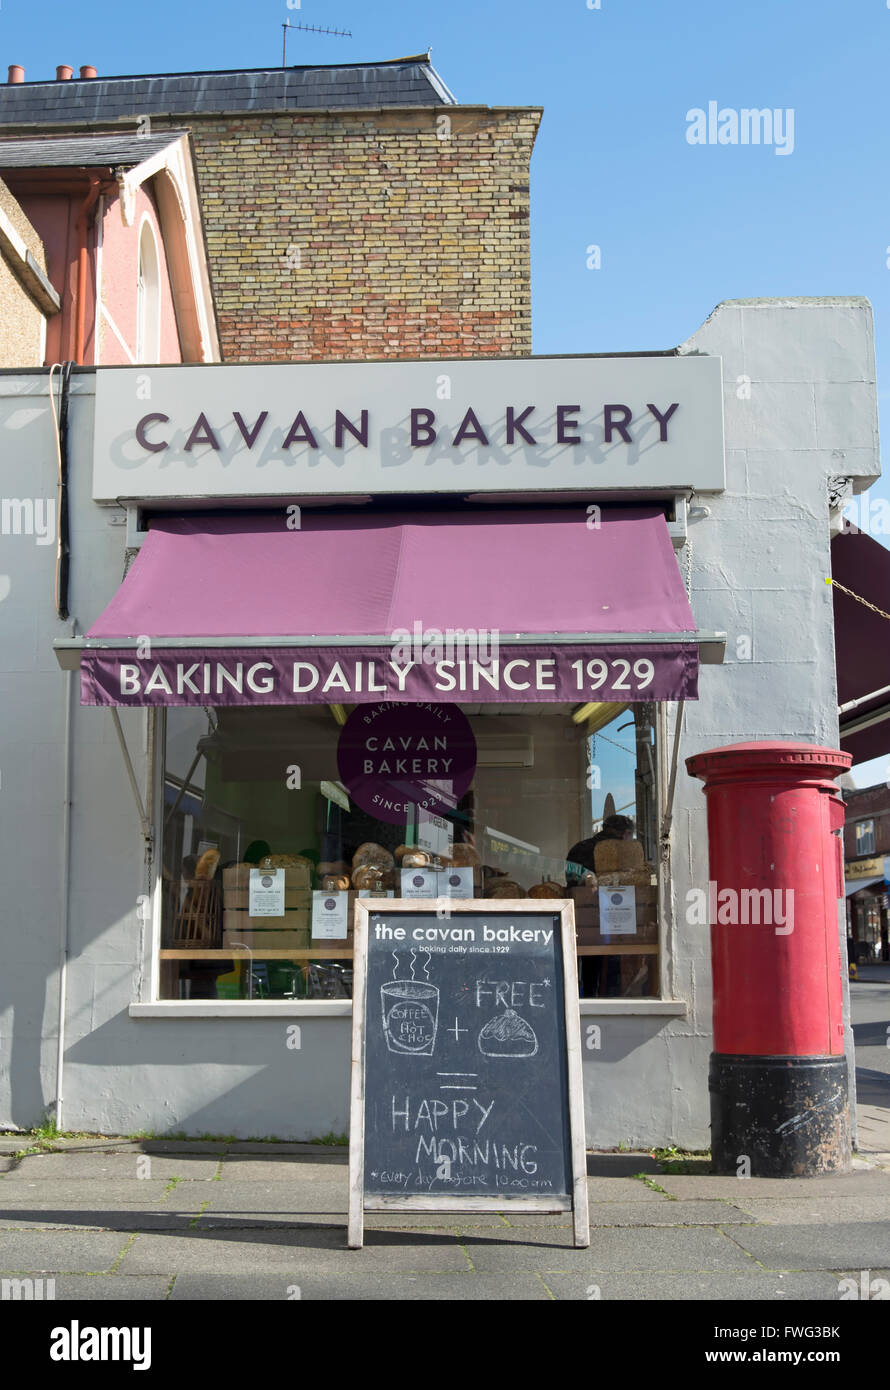 exterior of the cavan bakery, established 1929, hampton hill, middlesex, england - Stock Image